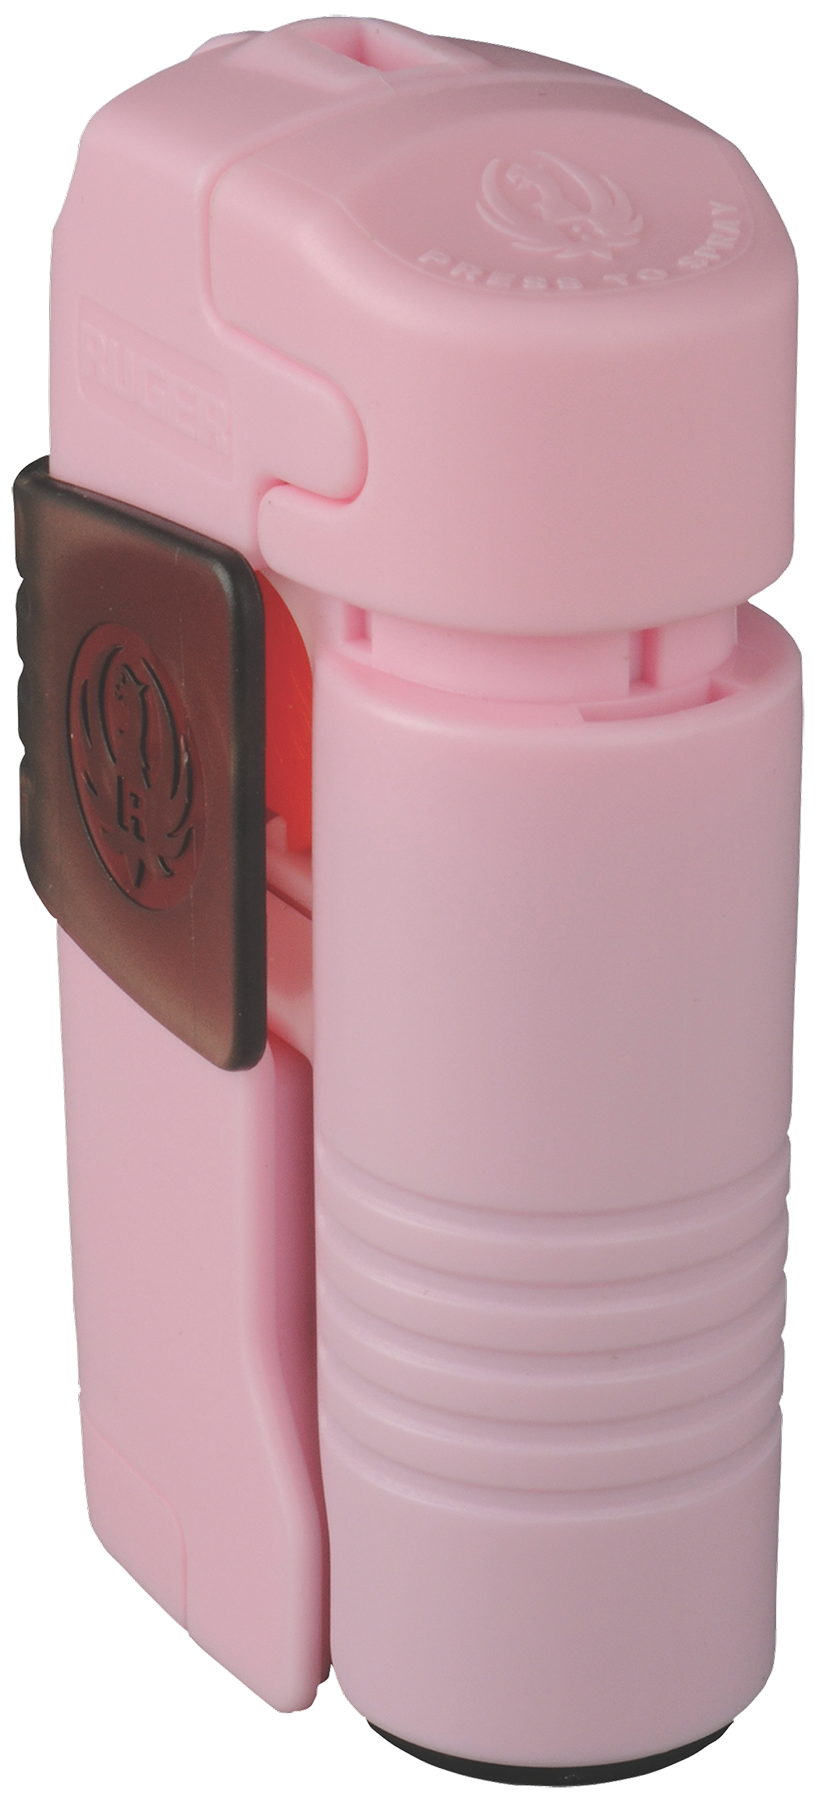 Ruger Personal Defense RHBP001 Ultra Pepper Spray Pocket .388 oz Close Contact Pink